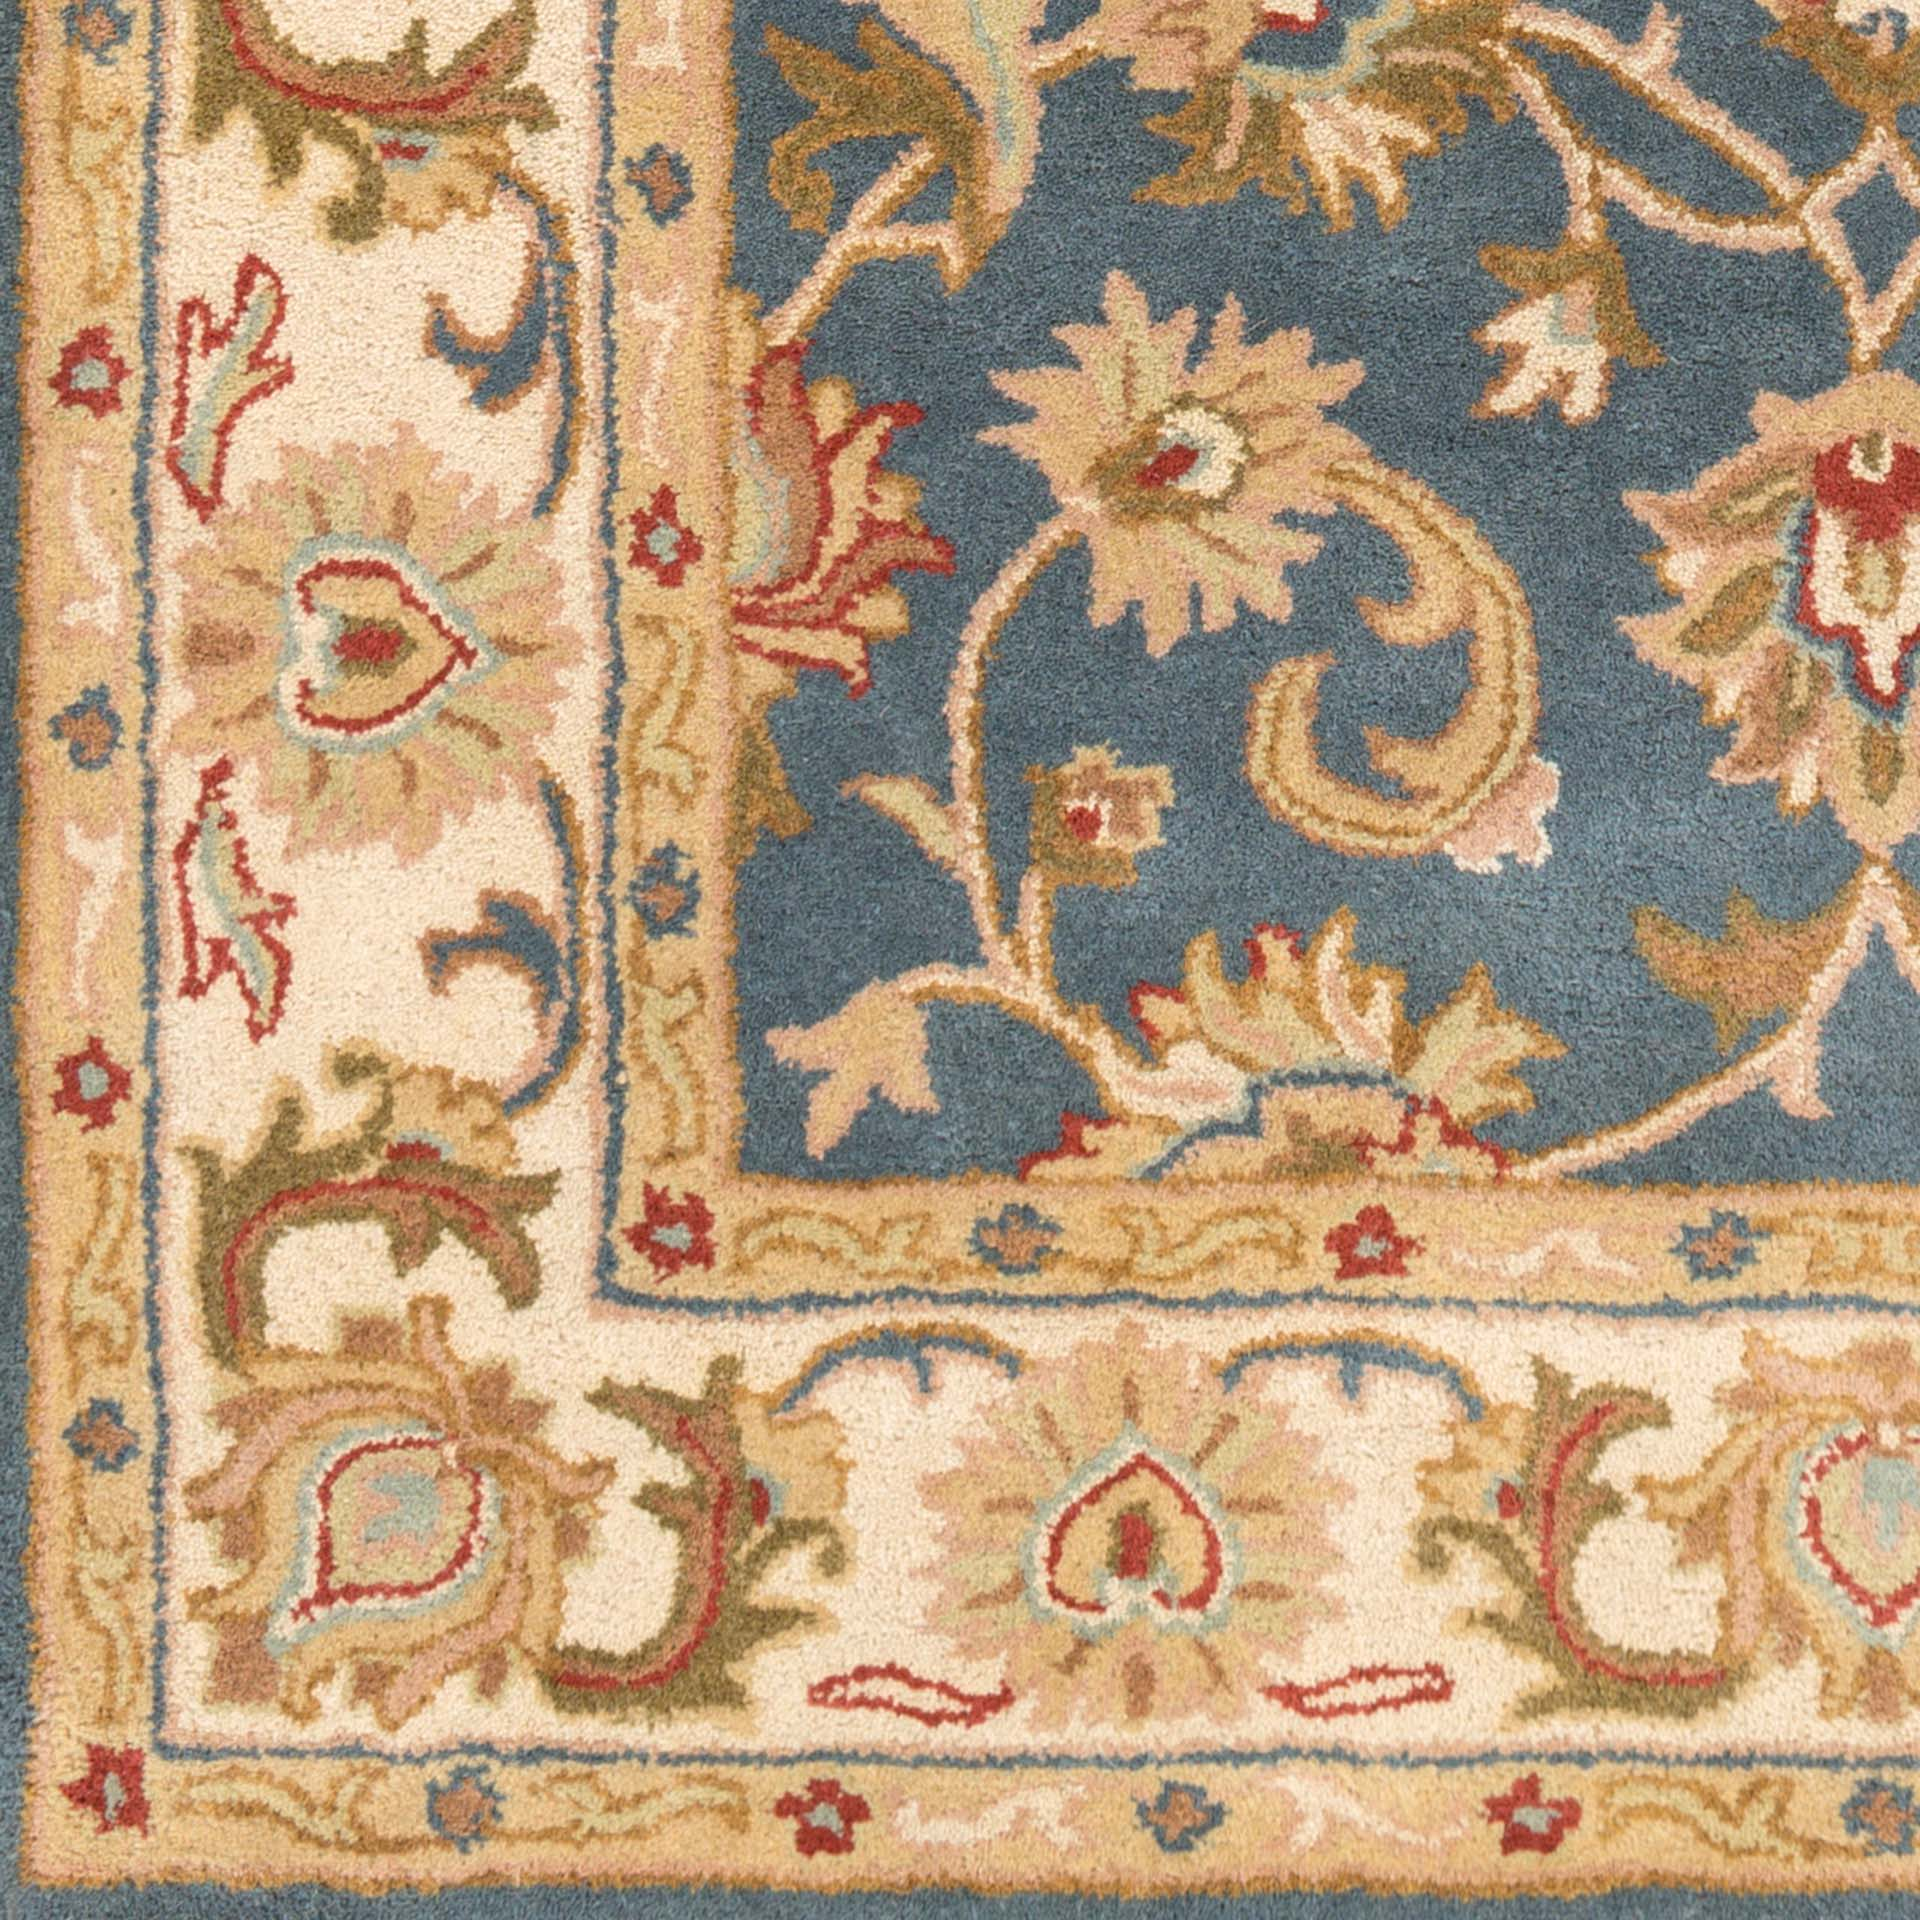 Classic hand-tufted area rug from India with cream, blue and red accents - Pattern Detail